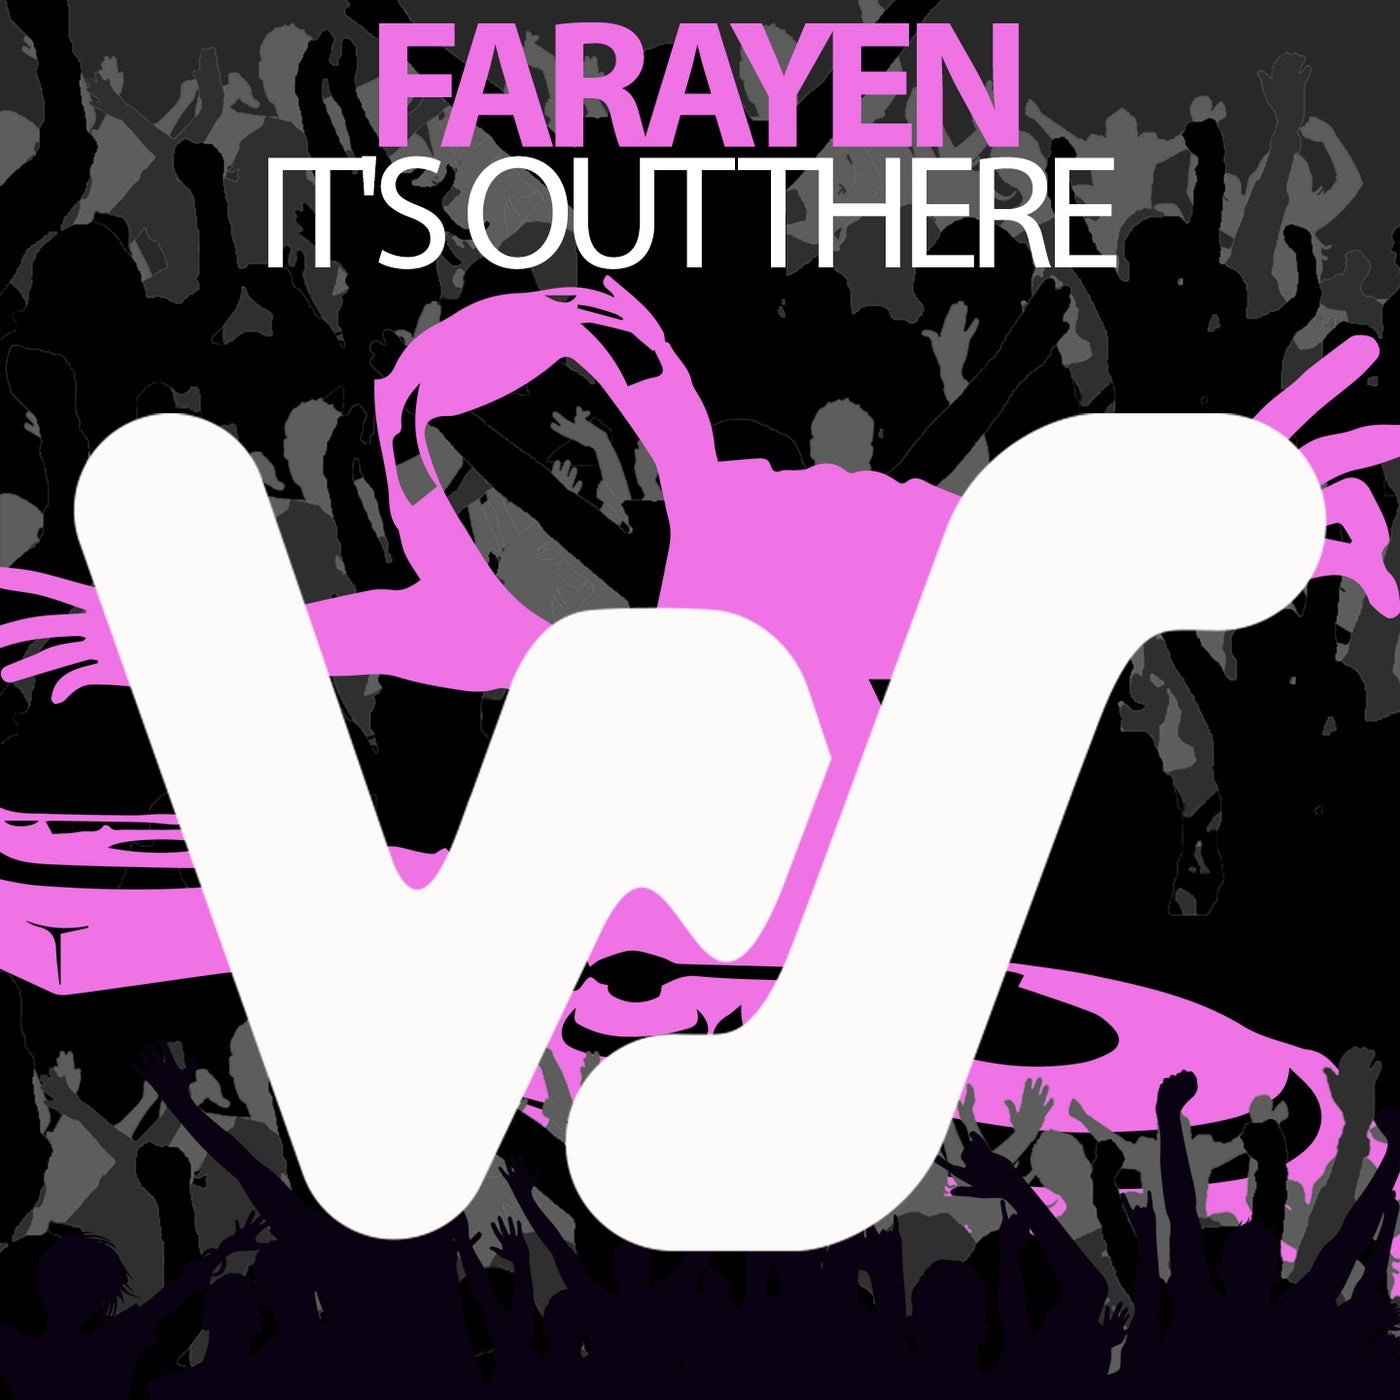 Cover - Farayen - It's Out There (Original Mix)